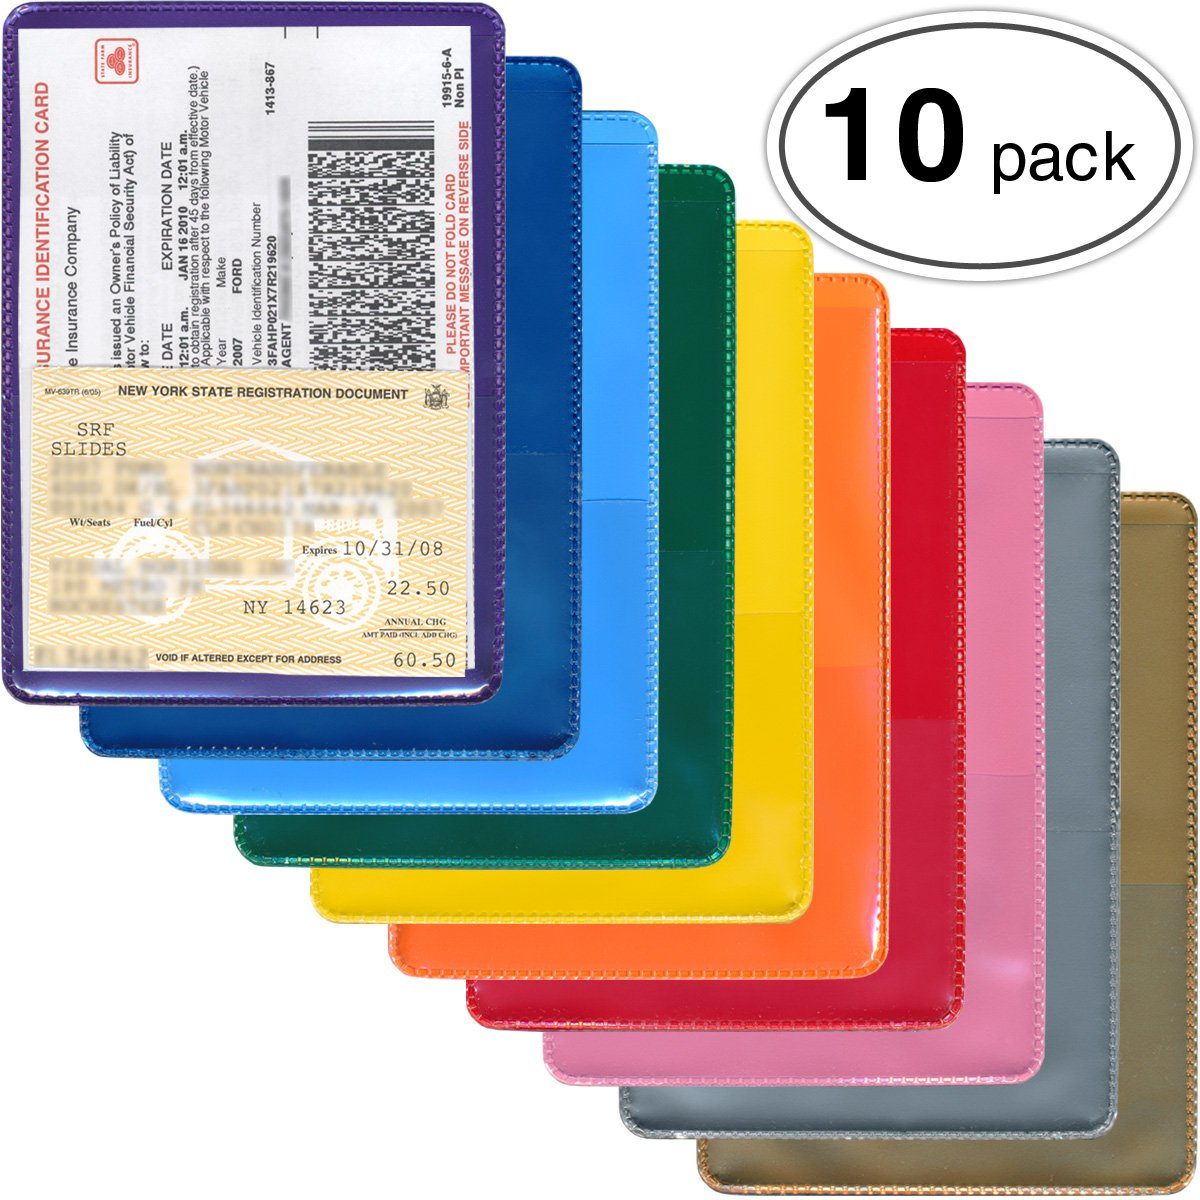 StoreSMART - Auto Insurance & ID Card Holders - Variety 10-Pack - RFS20VP